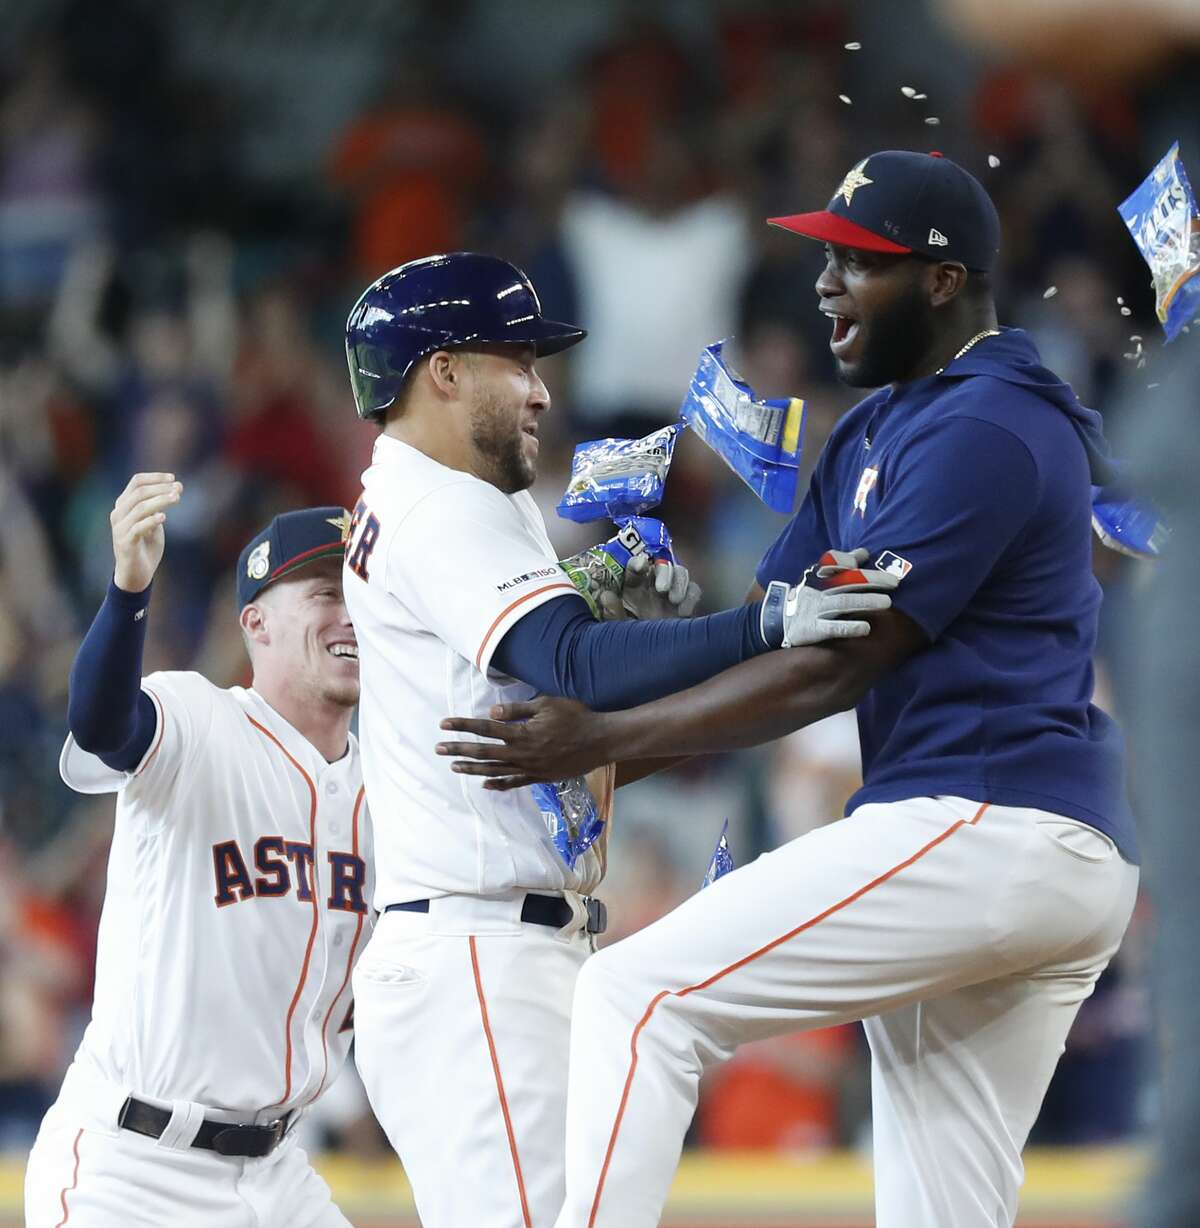 Houston Astros Yordan Alvarez (44) celebrates with George Springer (4) after Springer hit a walkoff RBI to beat the Los Angeles Angels 11-10 during the tenth inning of an MLB game at Minute Maid Park, Sunday, July 7, 2019, in Houston.